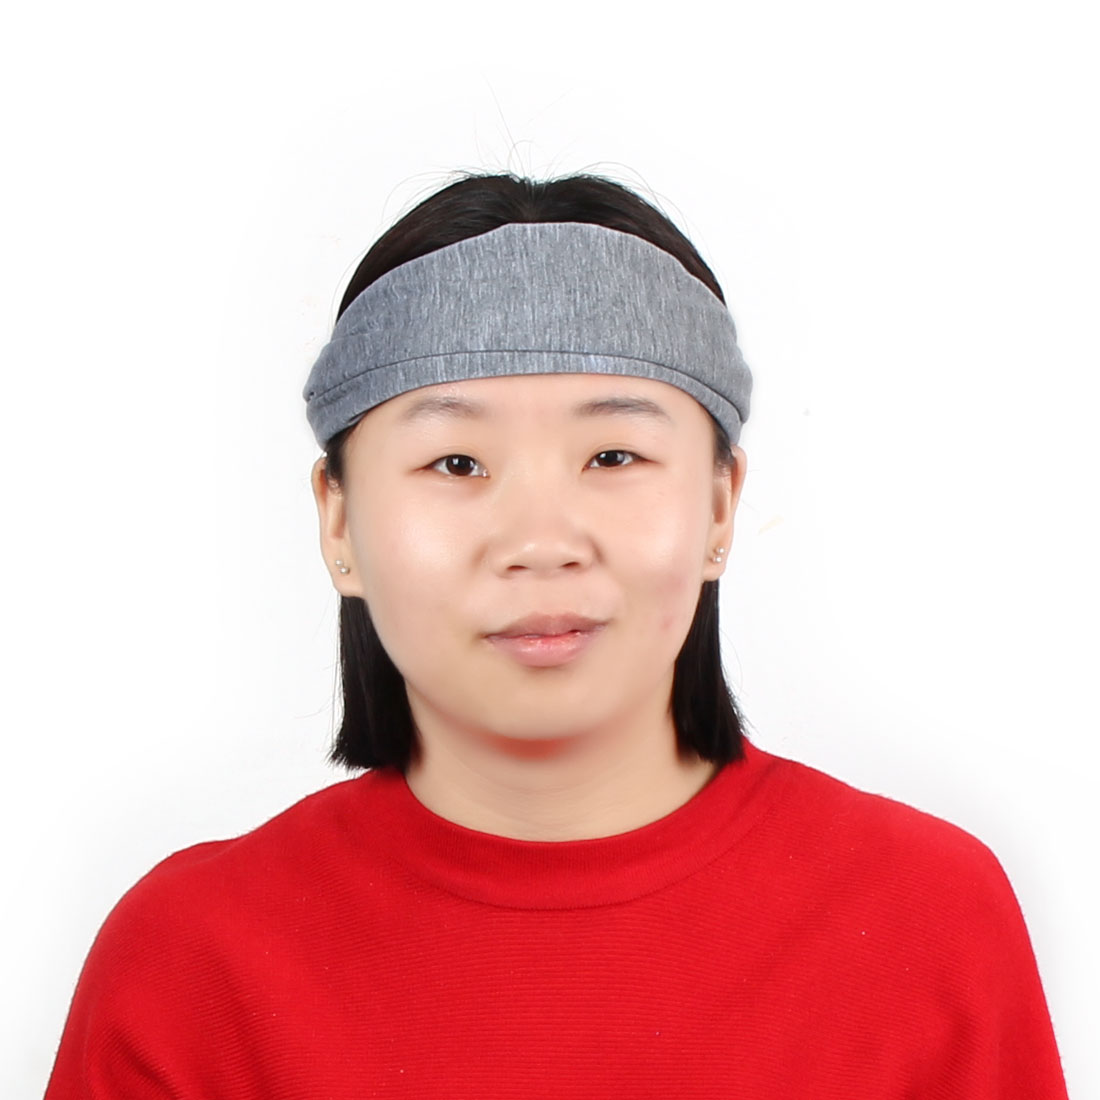 Outdoor Running Sports Cotton Blends Elastic Headwraps Headband Hair Band Gray - image 5 de 5